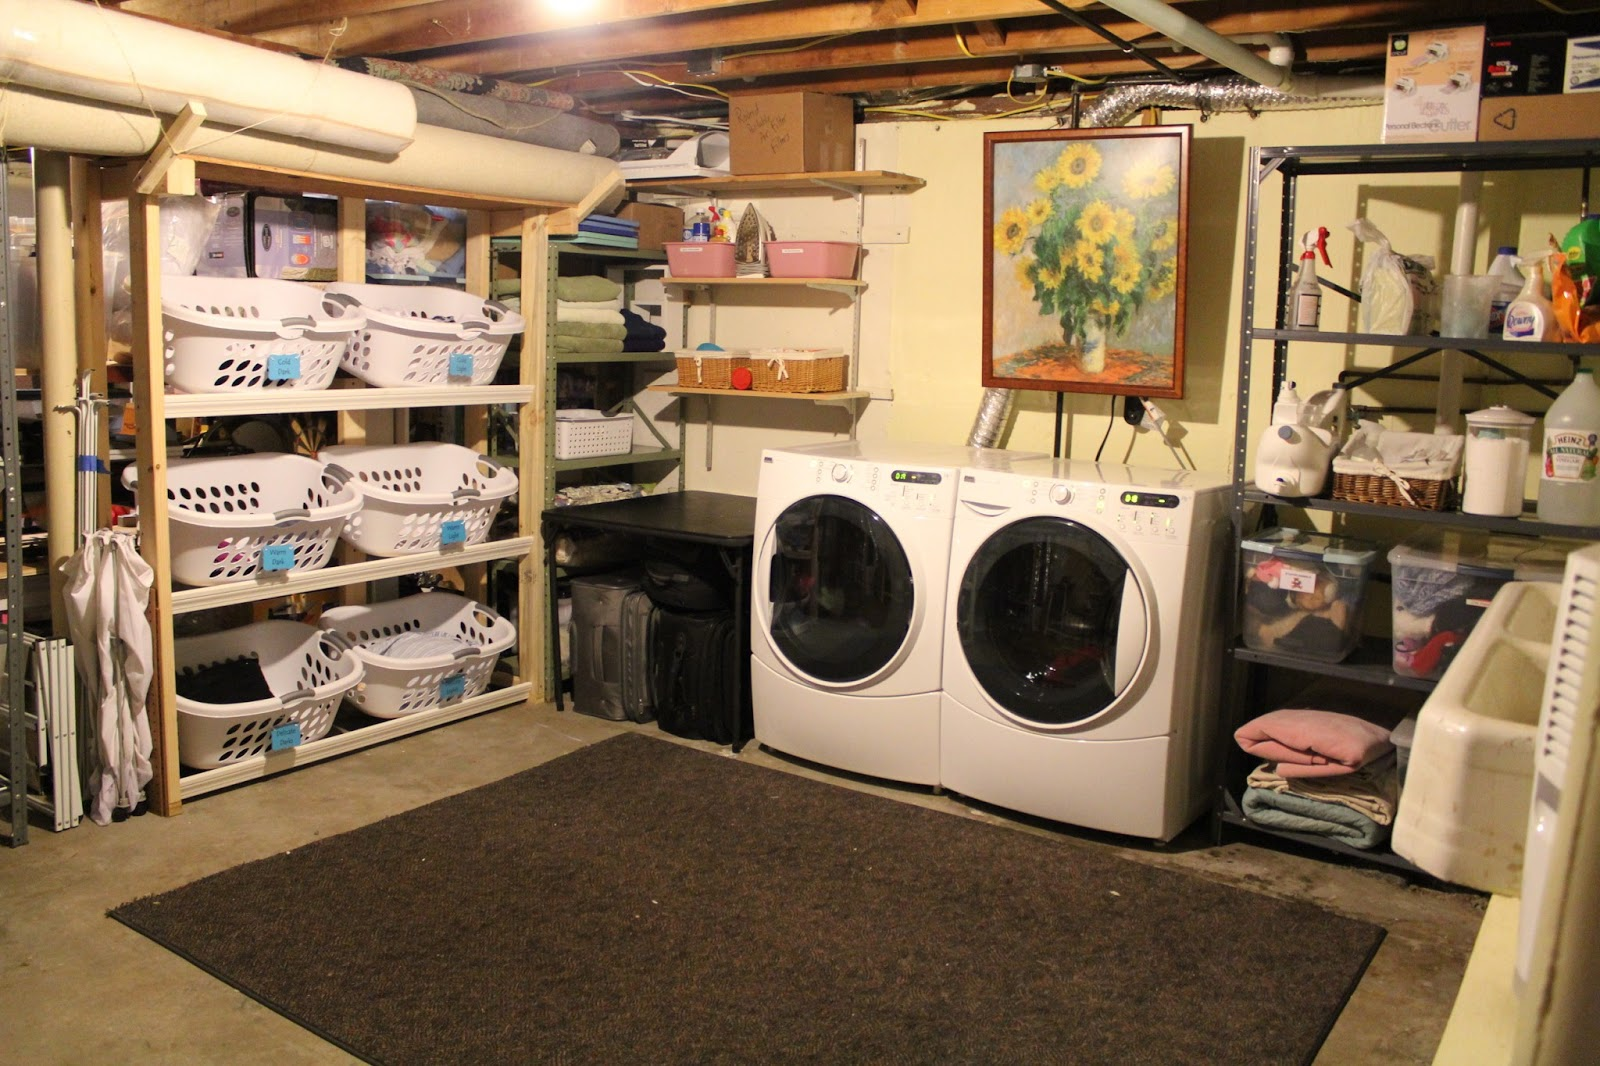 Small Space Tips For Organizing Cleaning And Daily Life Laundry Room Redo